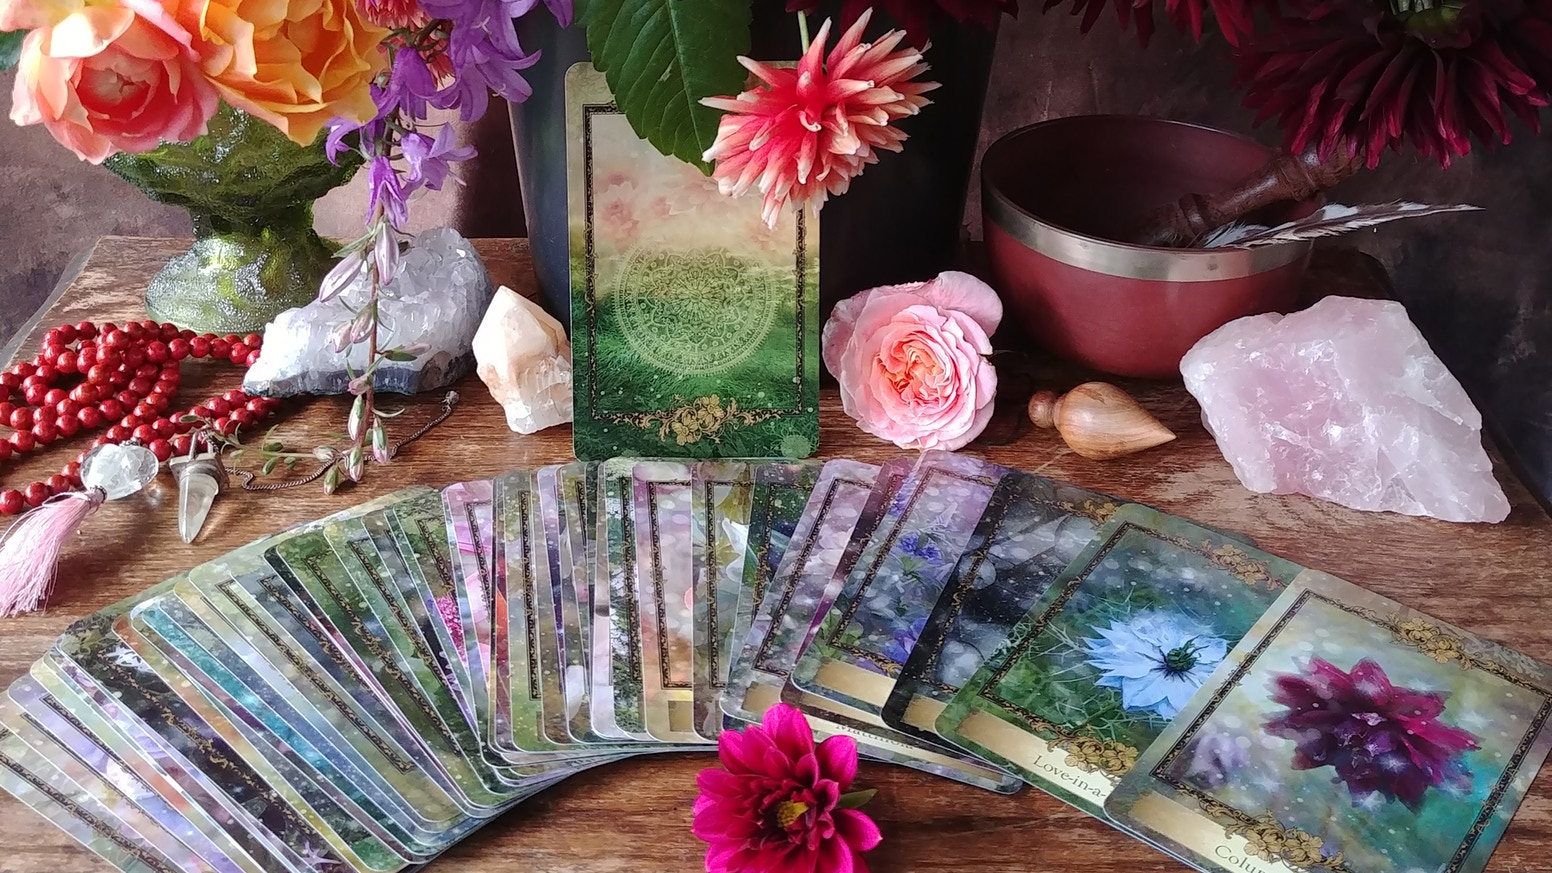 48 Card Oracle. Access your intuition and connections to Spirit and the natural world thru messages from Flowers. Sister deck: Eco Heart Oracle.